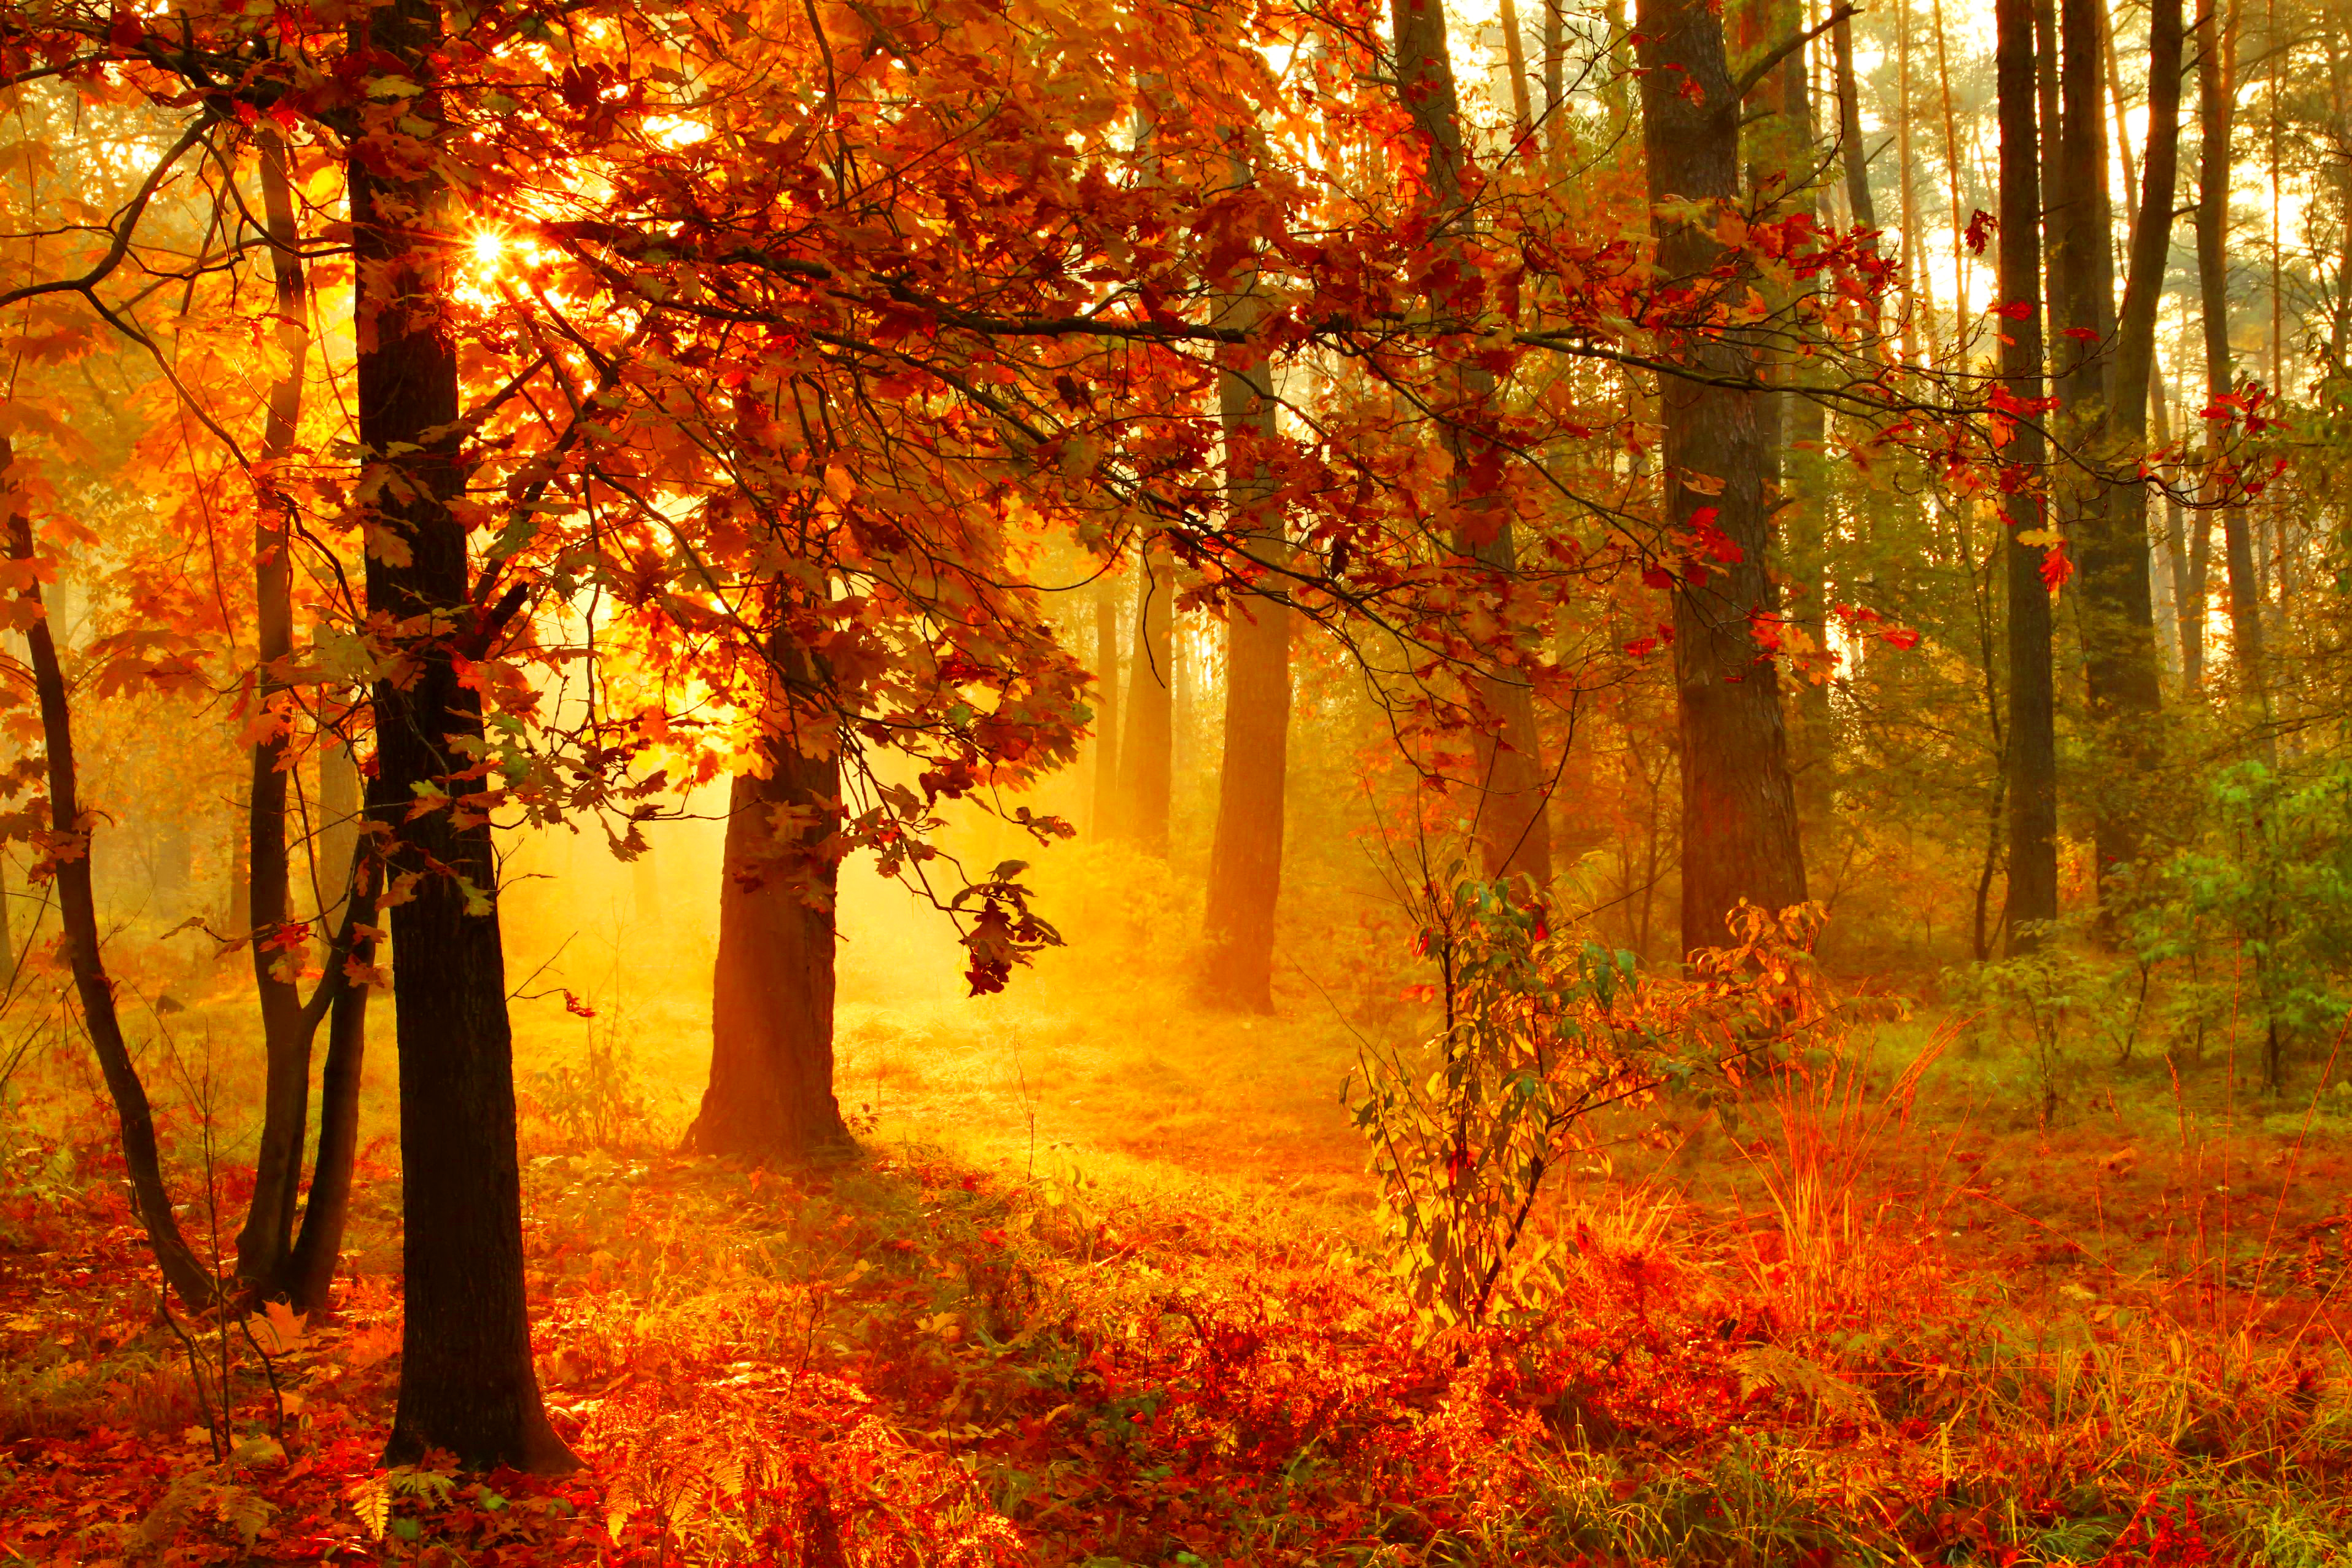 Fall Sunshine Wallpaper Sunset In Misty Autumn Forest Hd Wallpaper Background